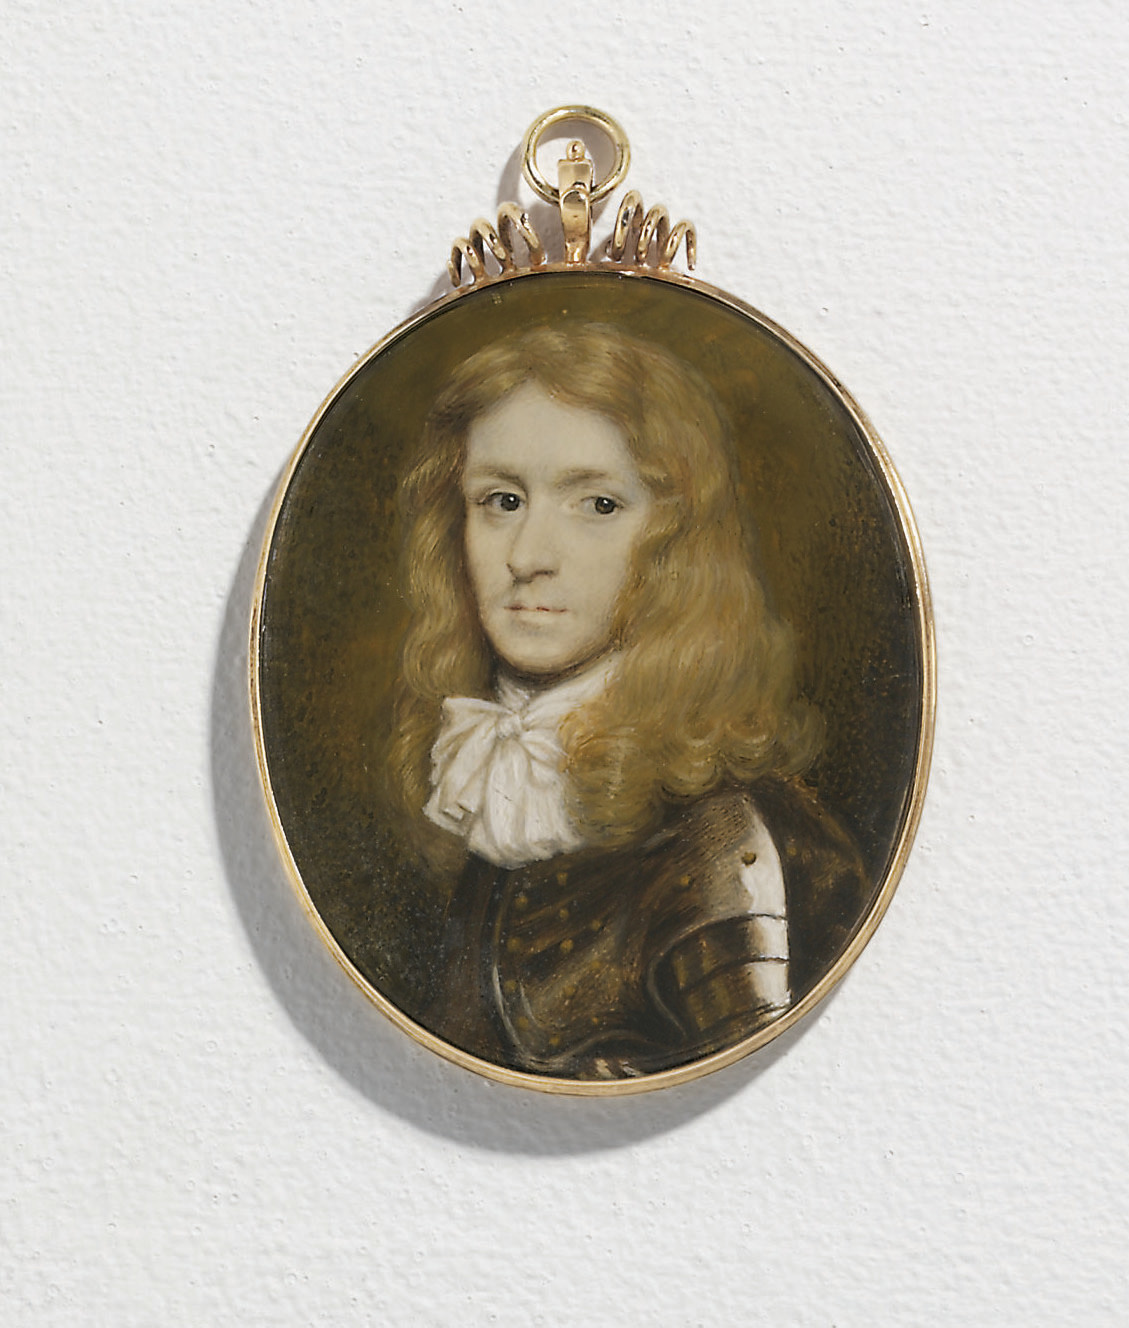 A young gentleman, in plate armour comprised of cuirass and spaulders secured with gilt rivets, elaborately tied white linen cravat, long curling fair hair